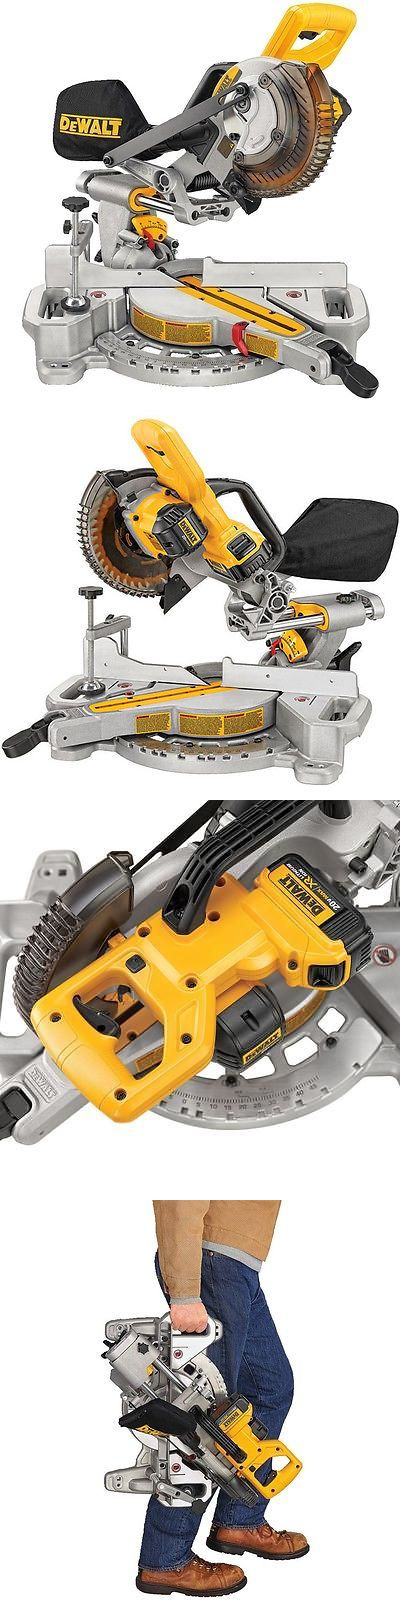 miter saw labeled. tools: dewalt dcs361b 20v max cordless 7-1/4 sliding compound miter saw labeled